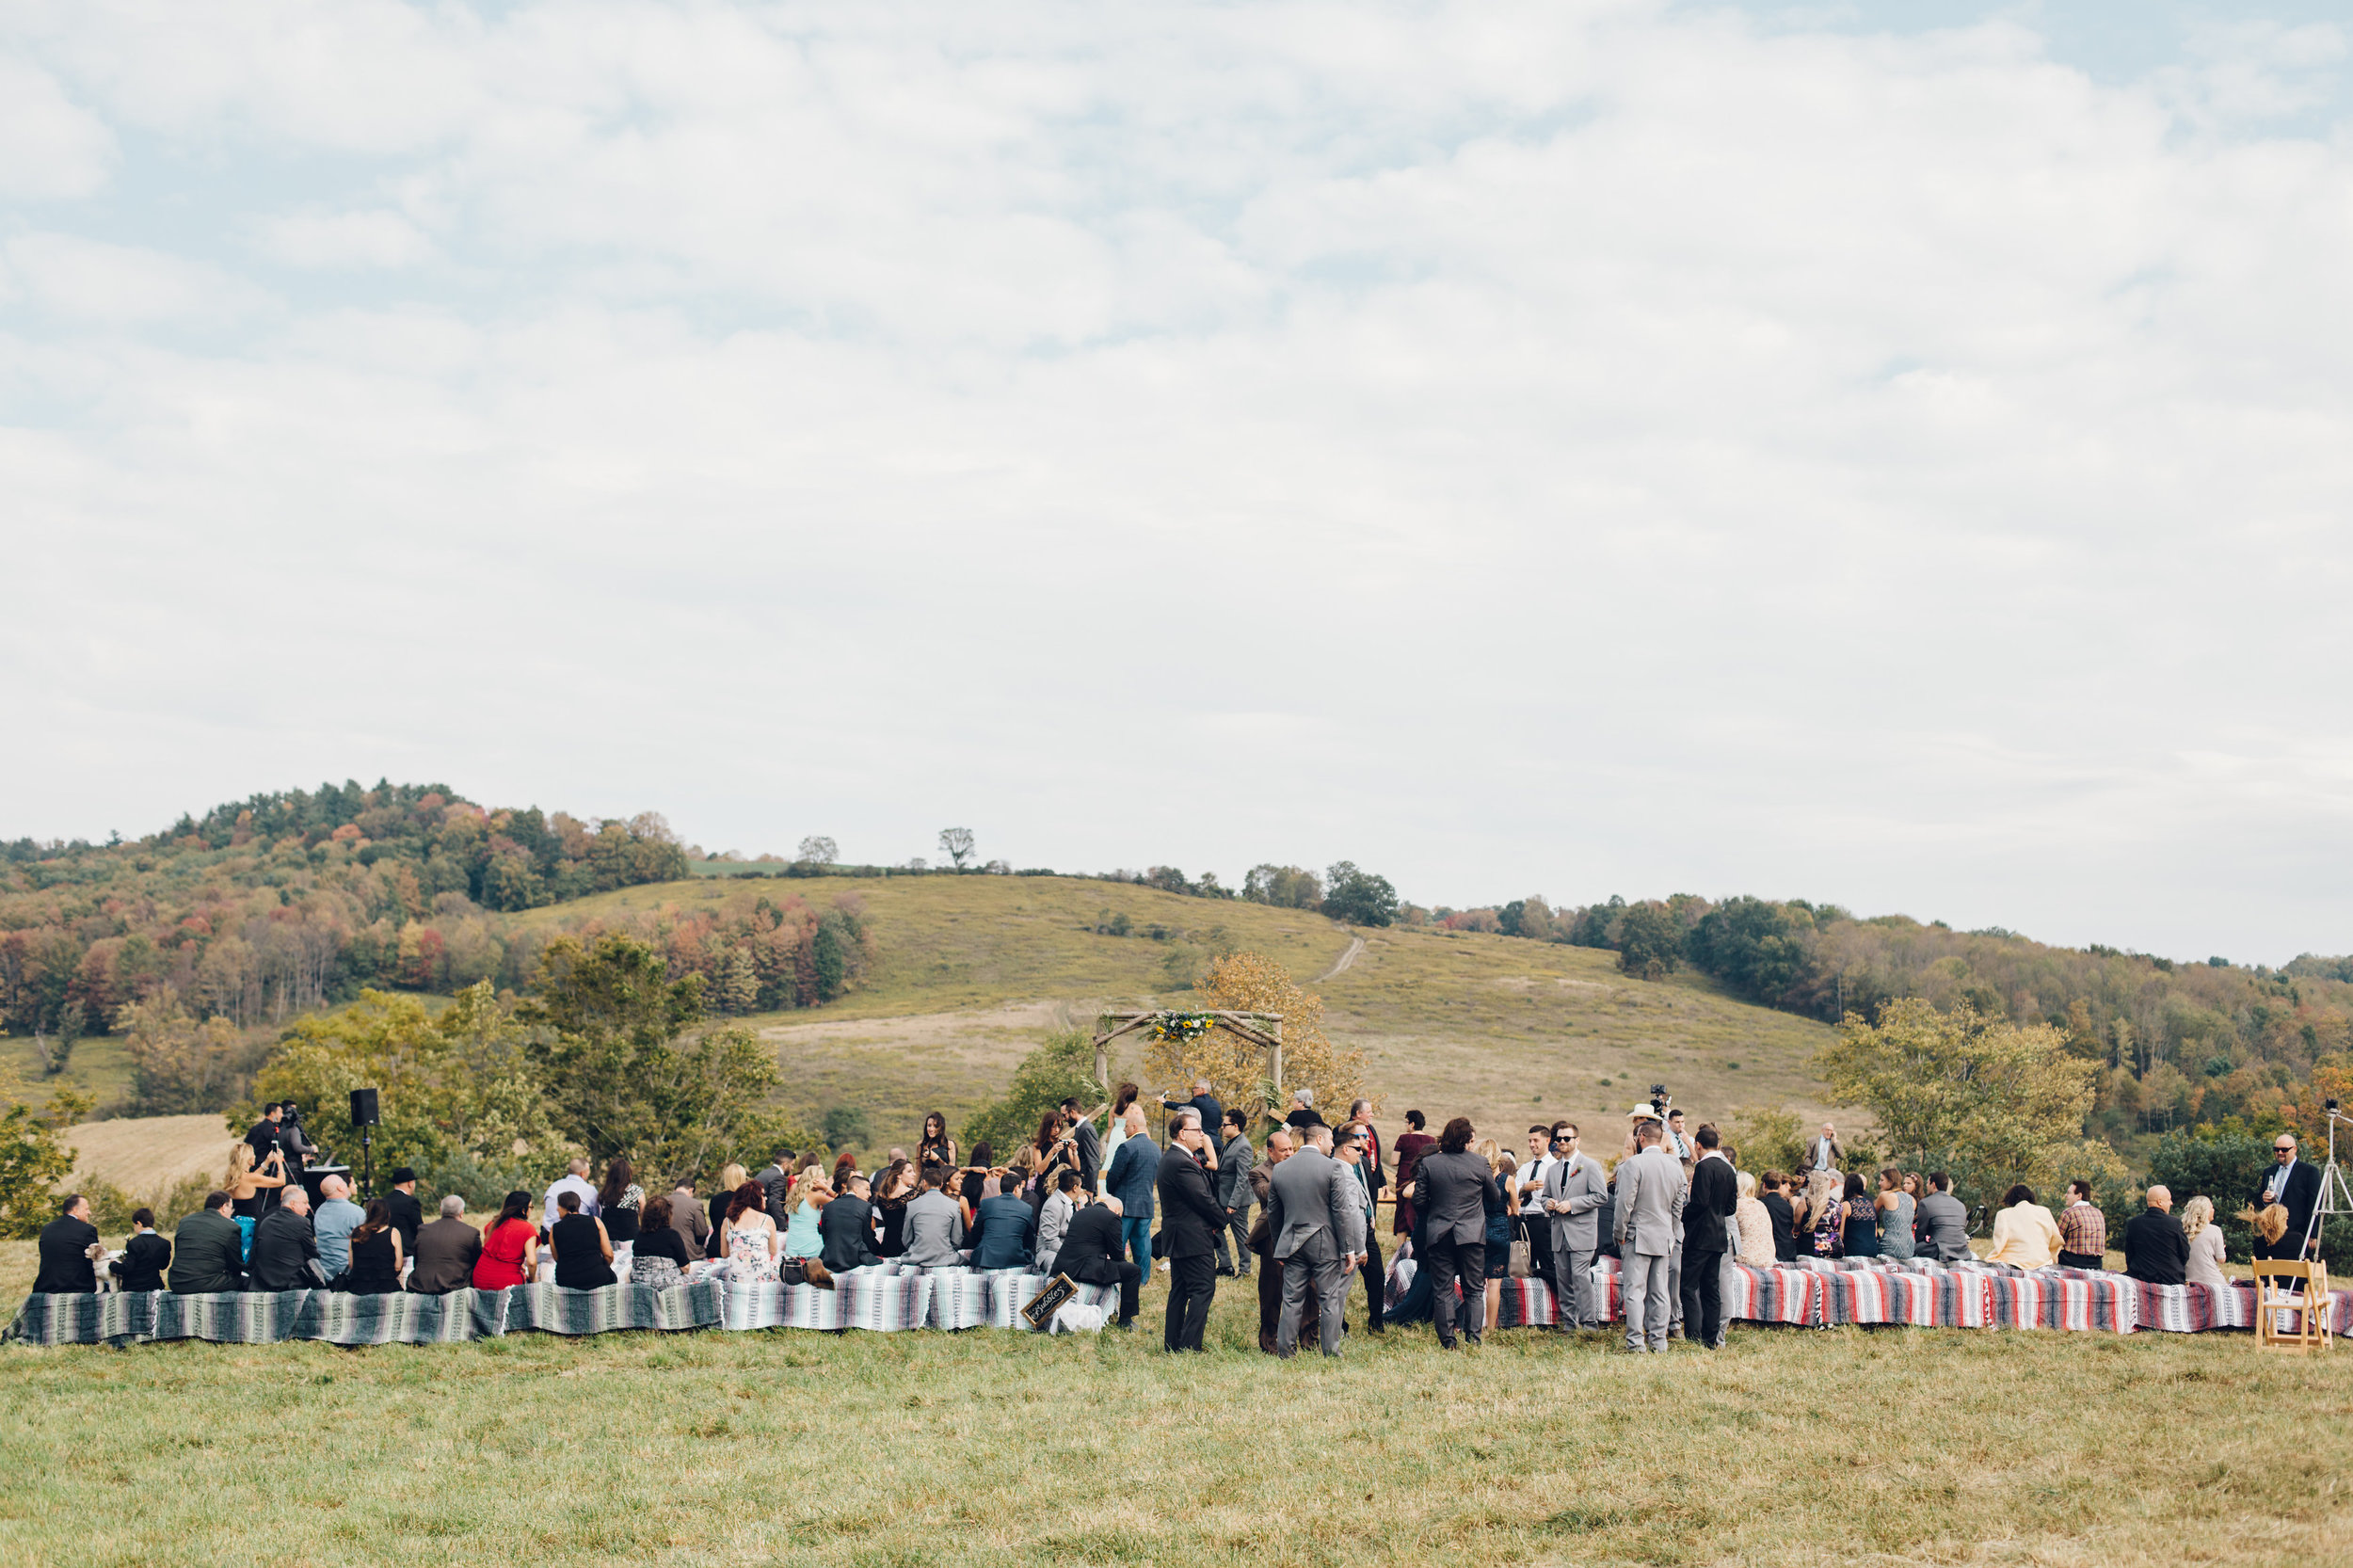 brittany-eric-upstate-diy-farm-wedding-couple-of-dudes-lawrence-braun-Hi-Res-0259.jpg